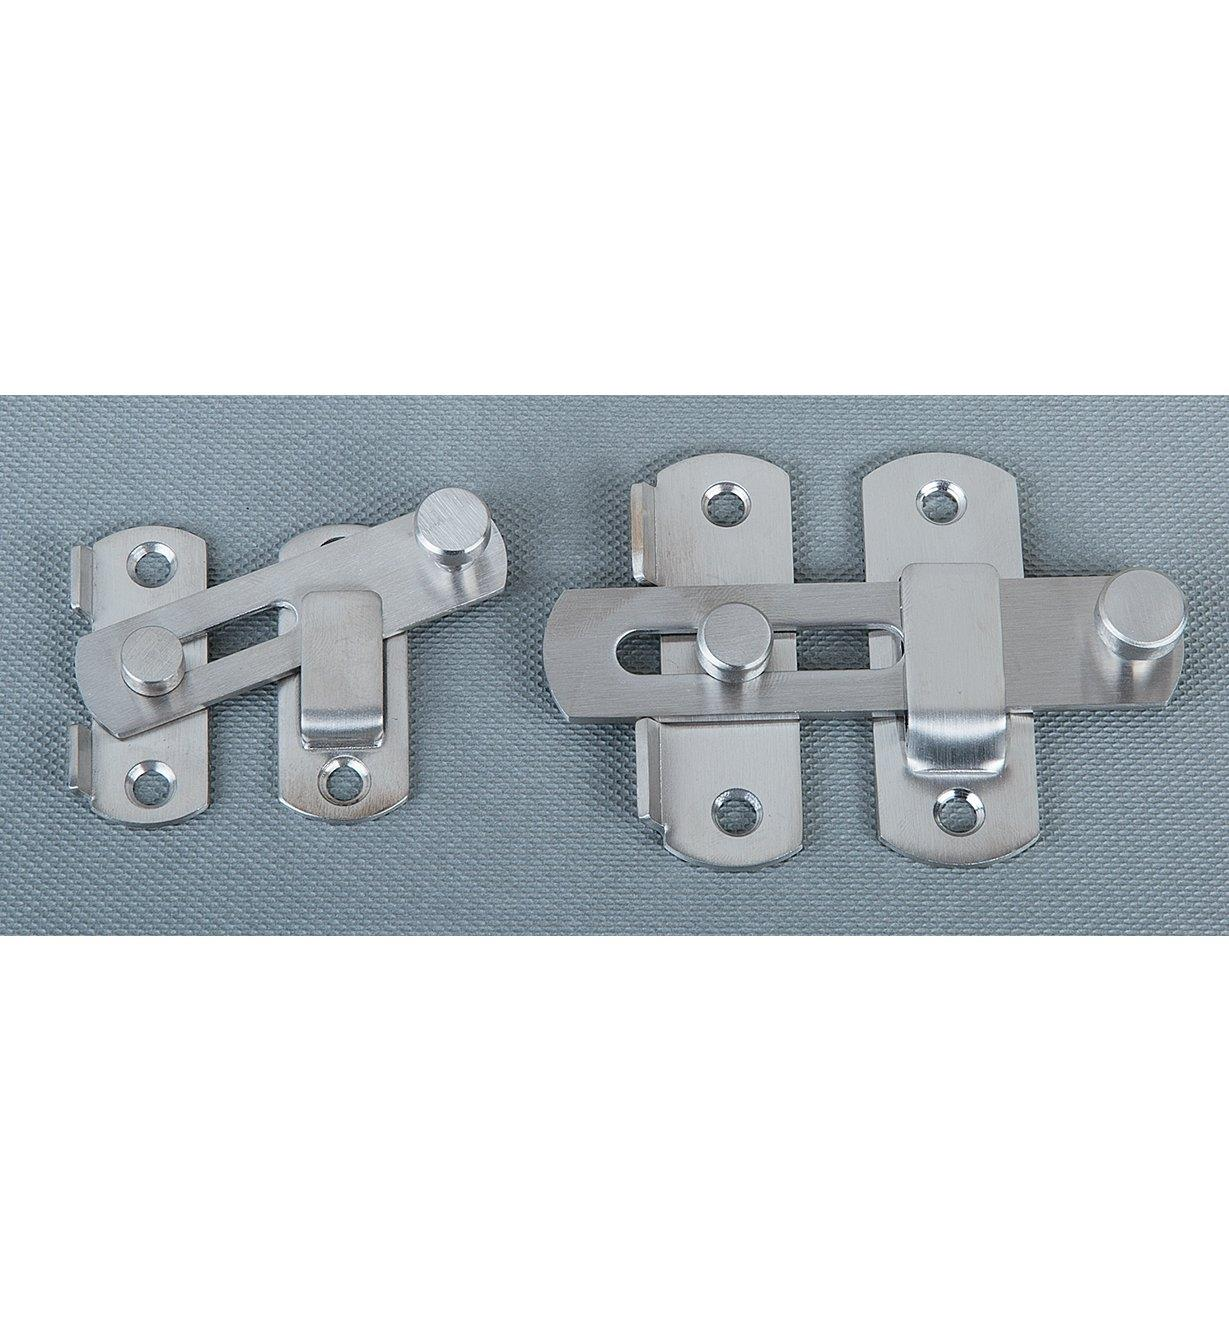 Stainless-Steel Shutter Latches